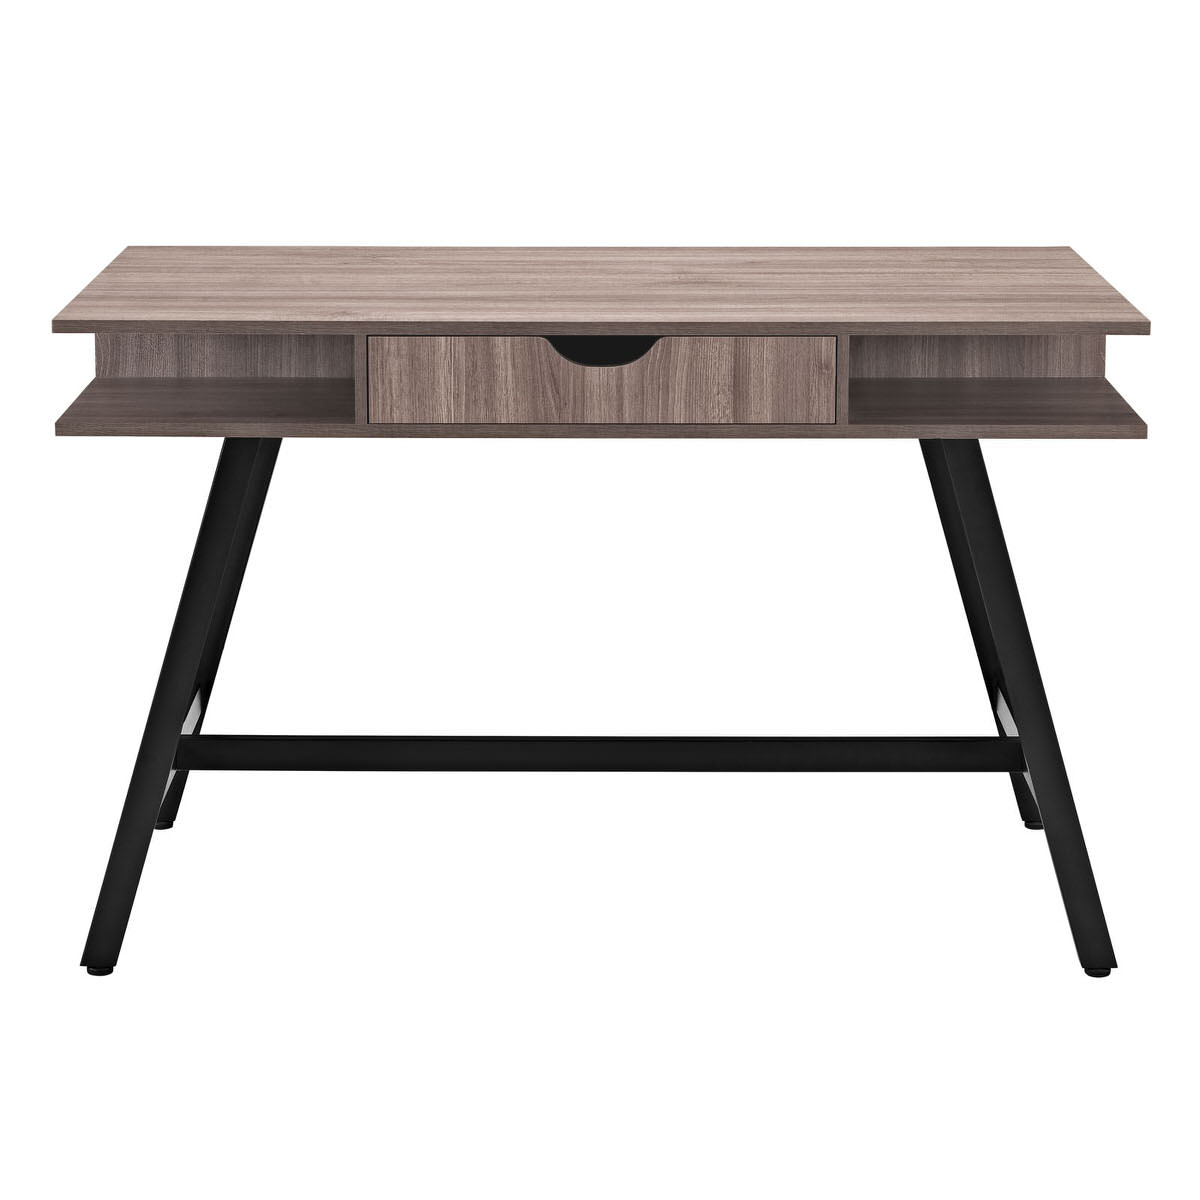 Swell Turnabout Office Desk Birch By Modern Living Download Free Architecture Designs Scobabritishbridgeorg